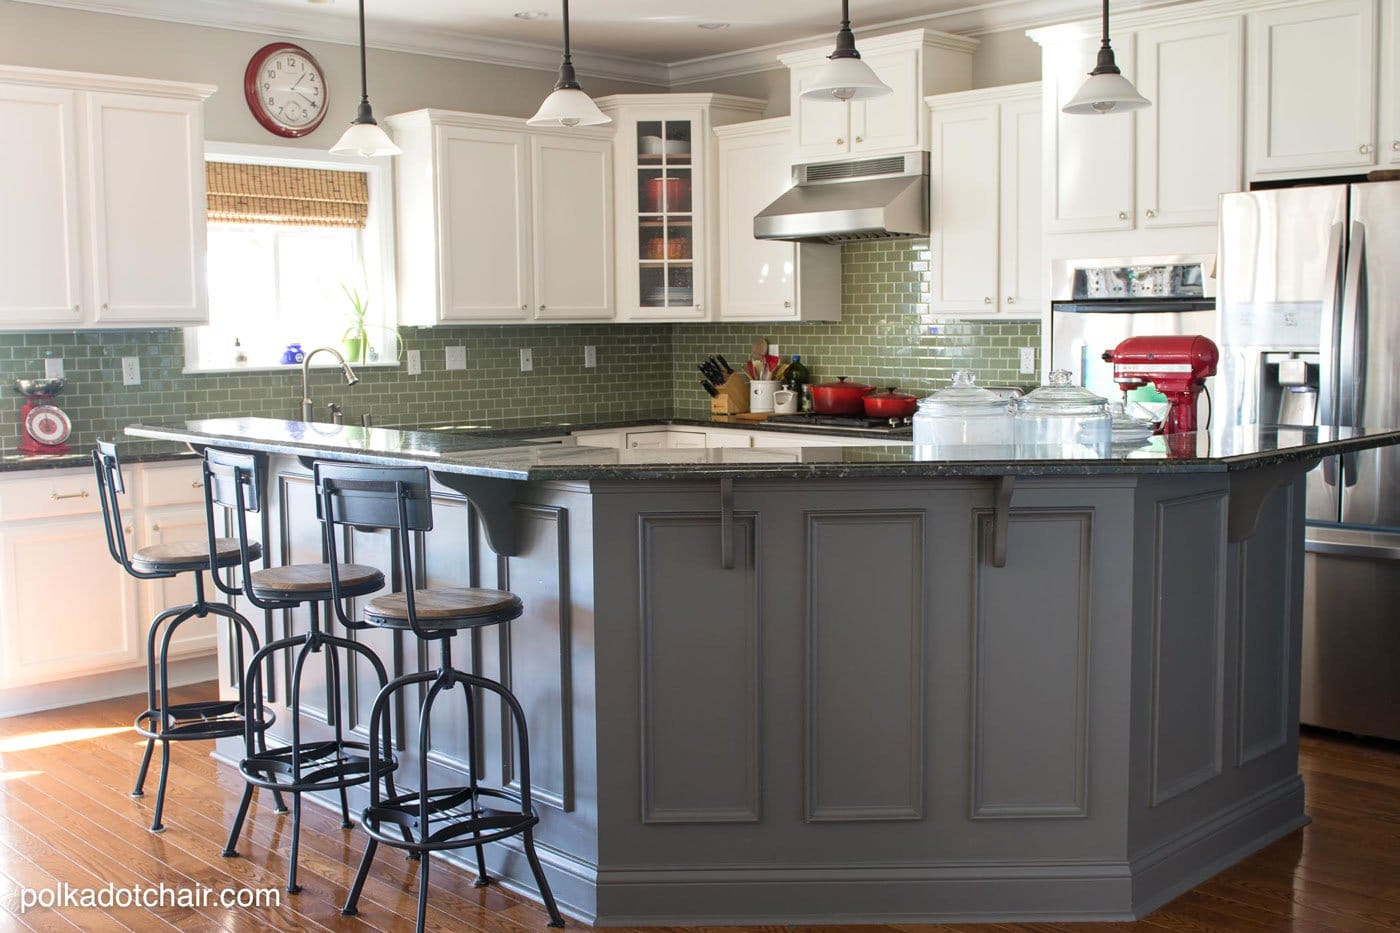 tips for painting kitchen cabinets painted kitchen cabinets Before and After Photos of a Kitchen that had it s Cabinets Painted White lots of